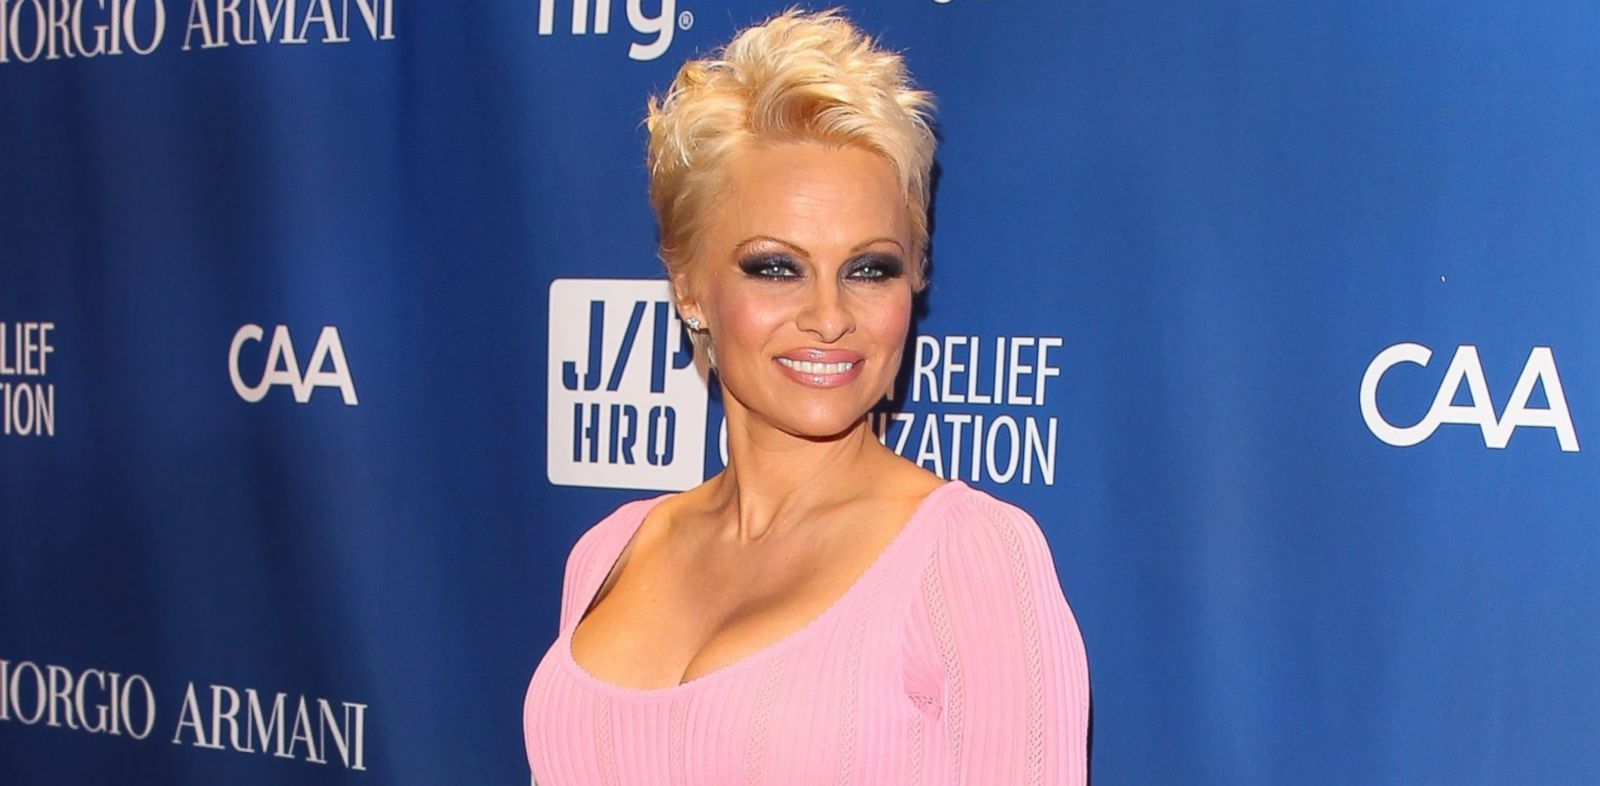 PHOTO: Pamela Anderson attends the Sean Penn 3rd Annual Help Haiti Home Gala Benefiting J/P HRO Presented By Giorgio Armani at Montage Beverly Hills on Jan. 11, 2014 in Beverly Hills, Calif.